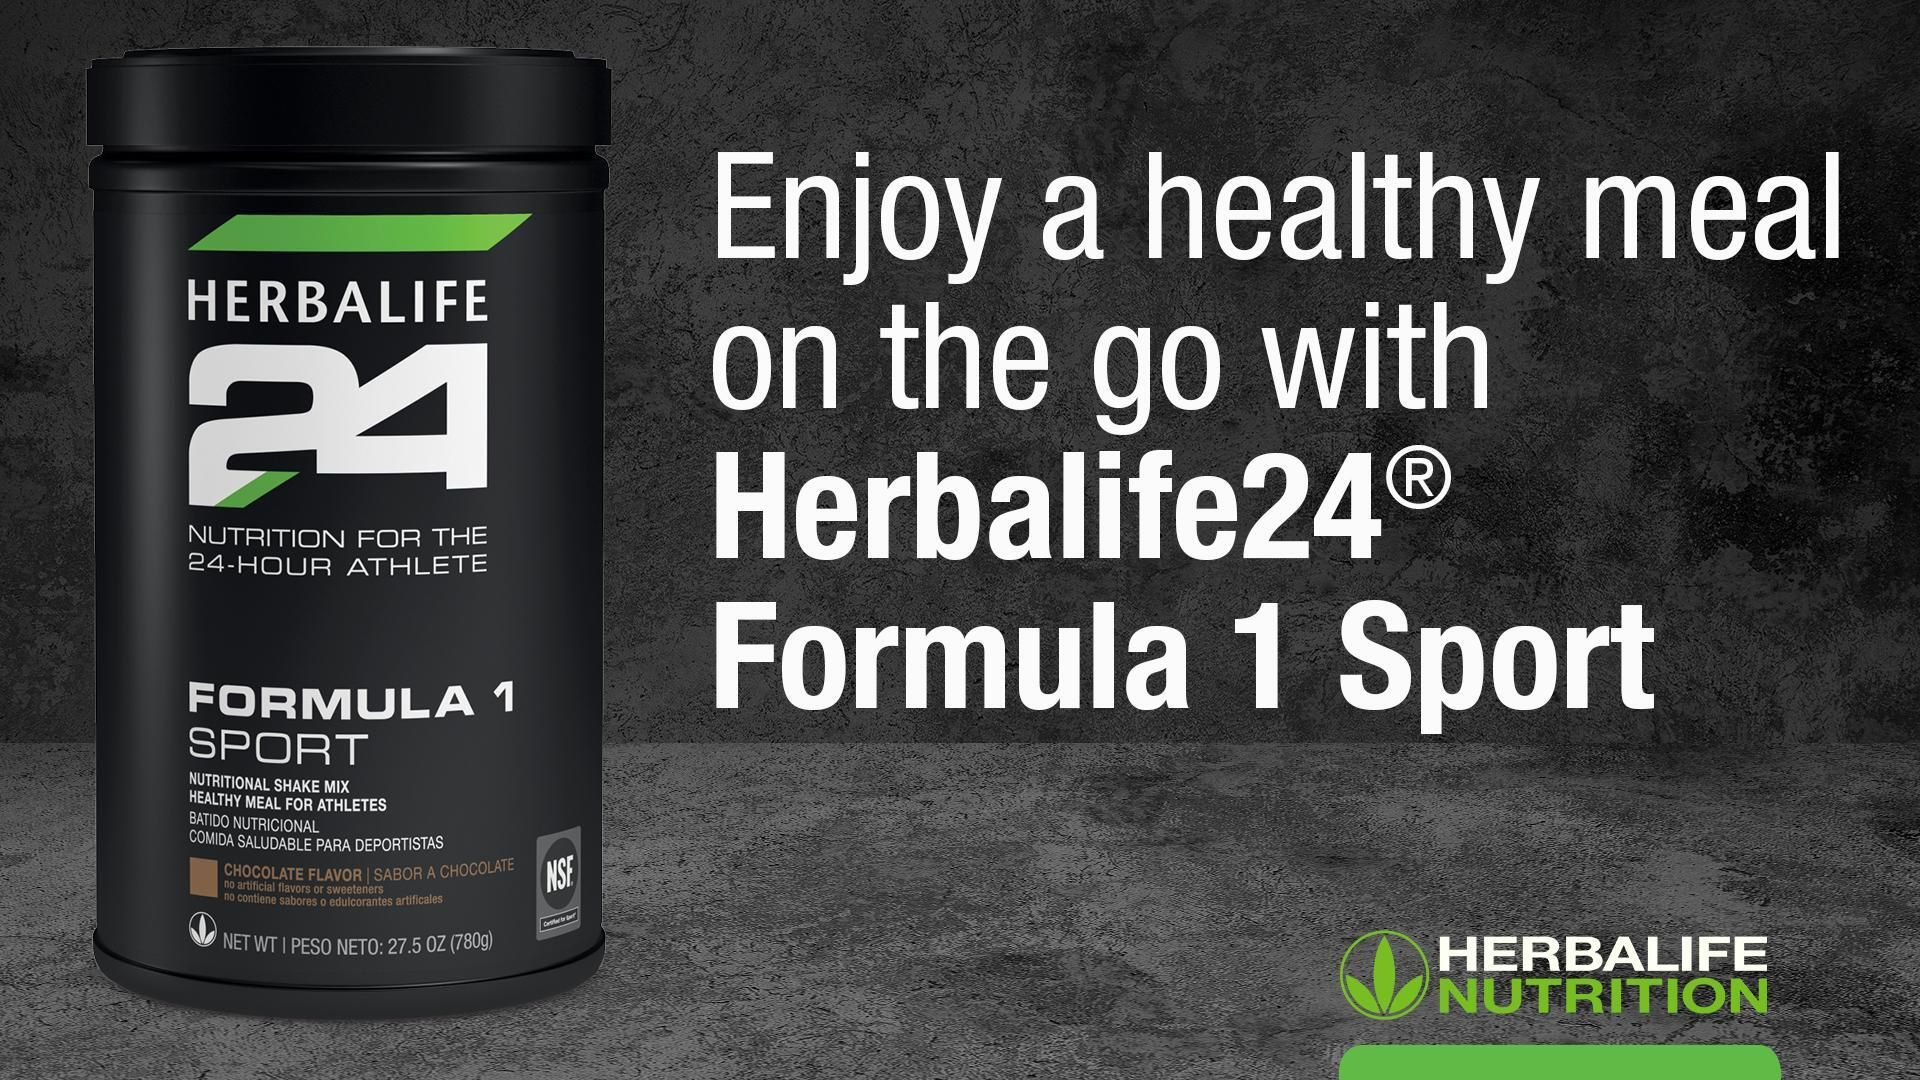 Herbalife24® Formula 1 Sport: Know the Products